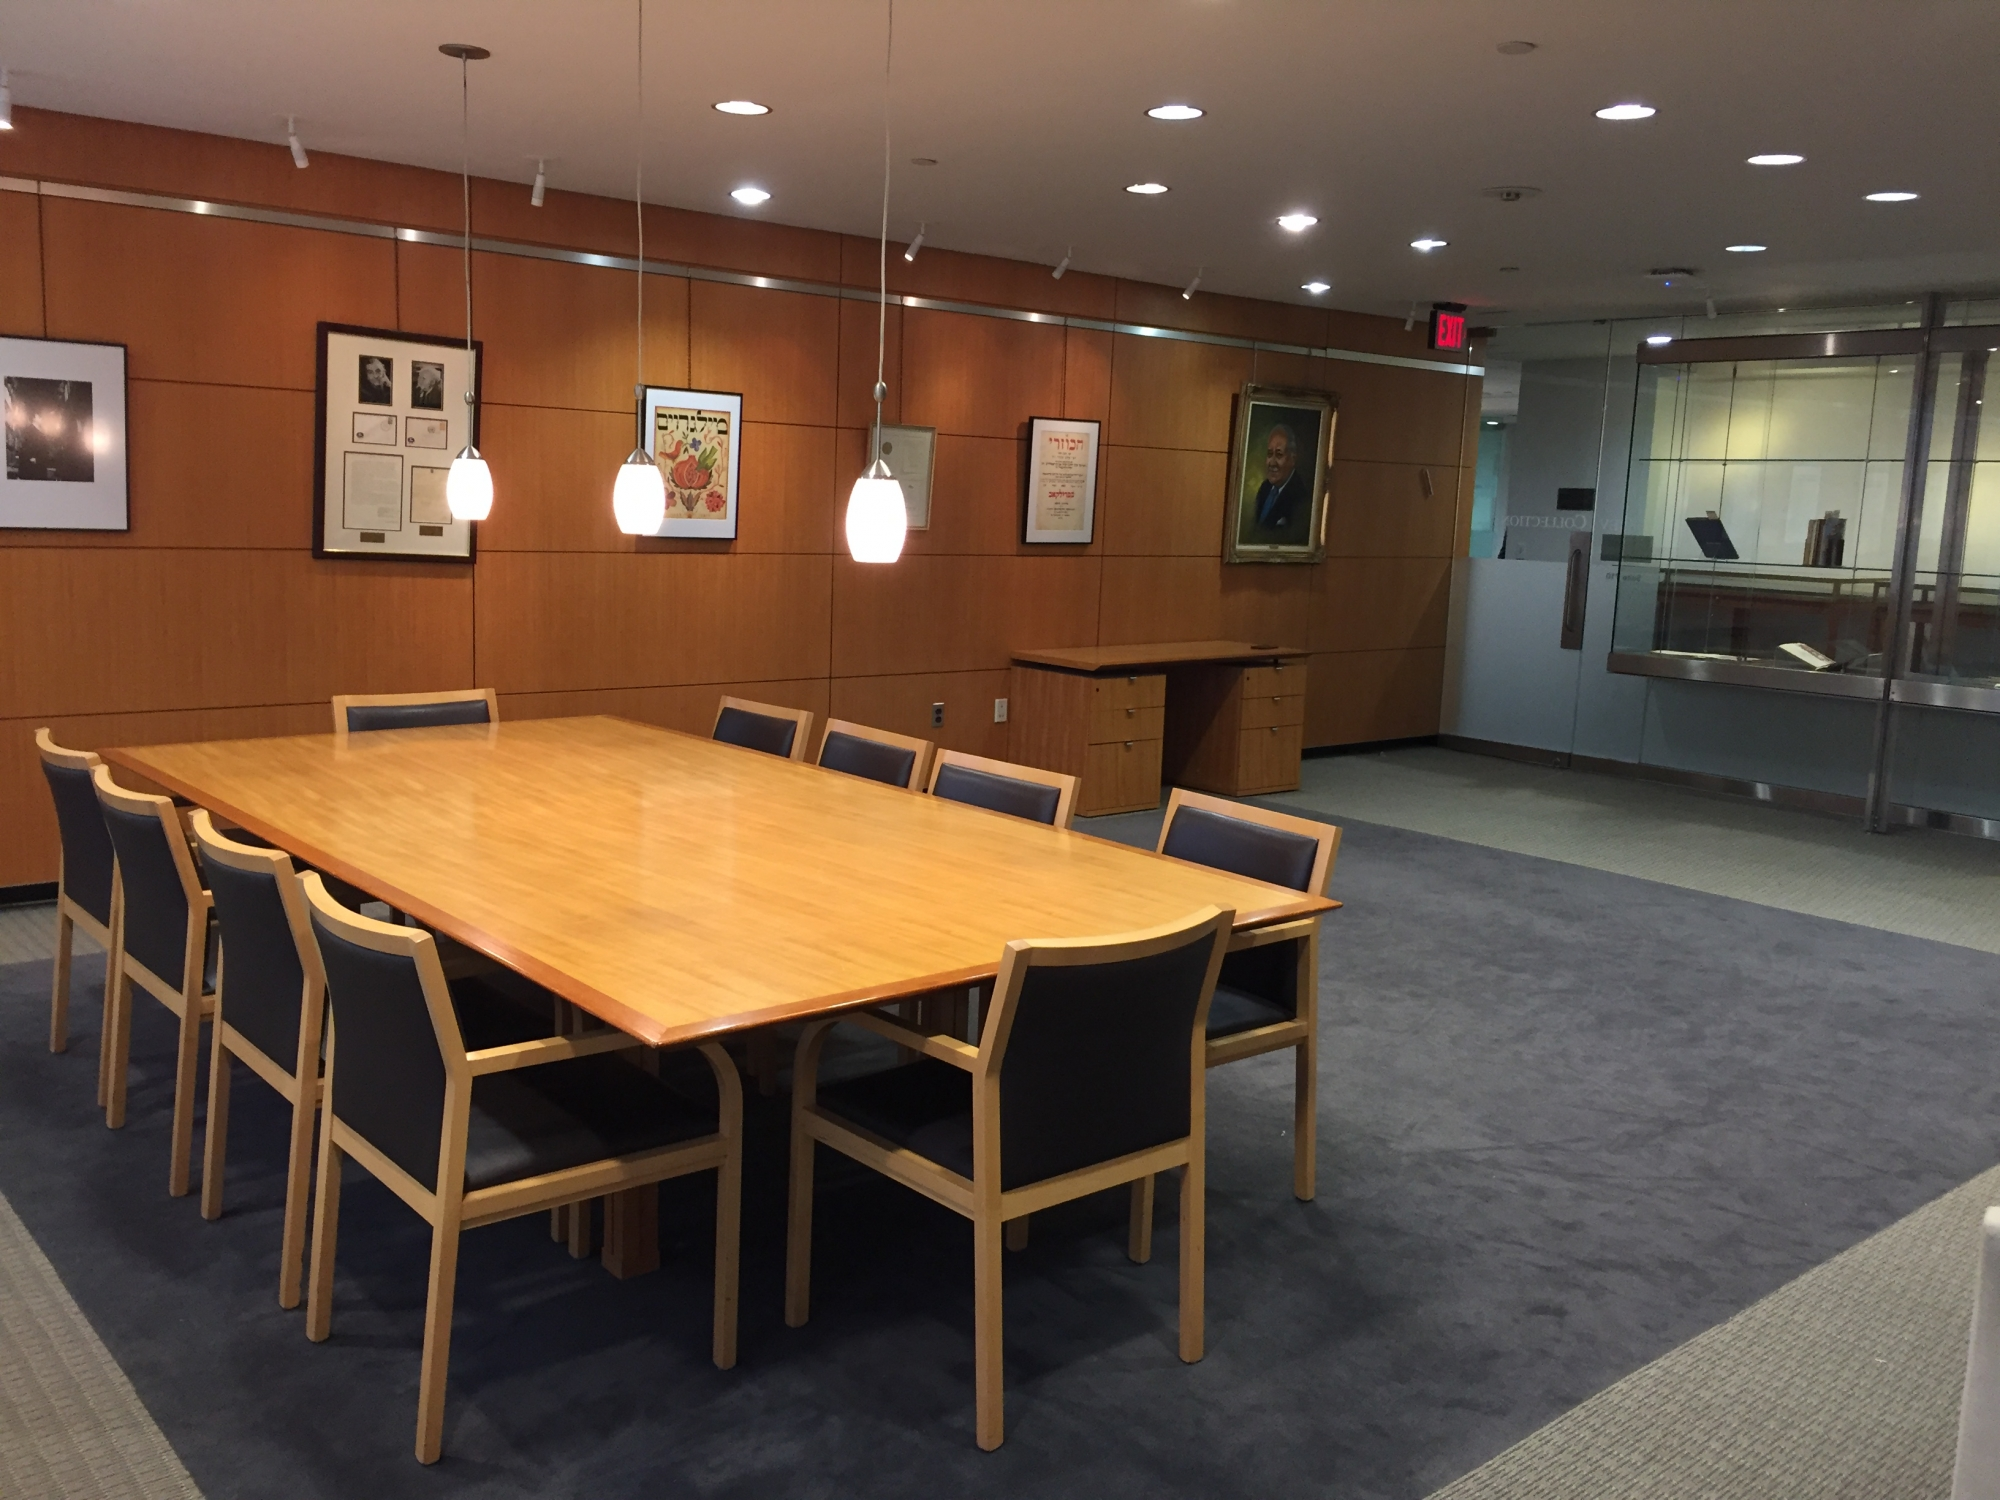 Gelman Library academic event space room 710 view of tables